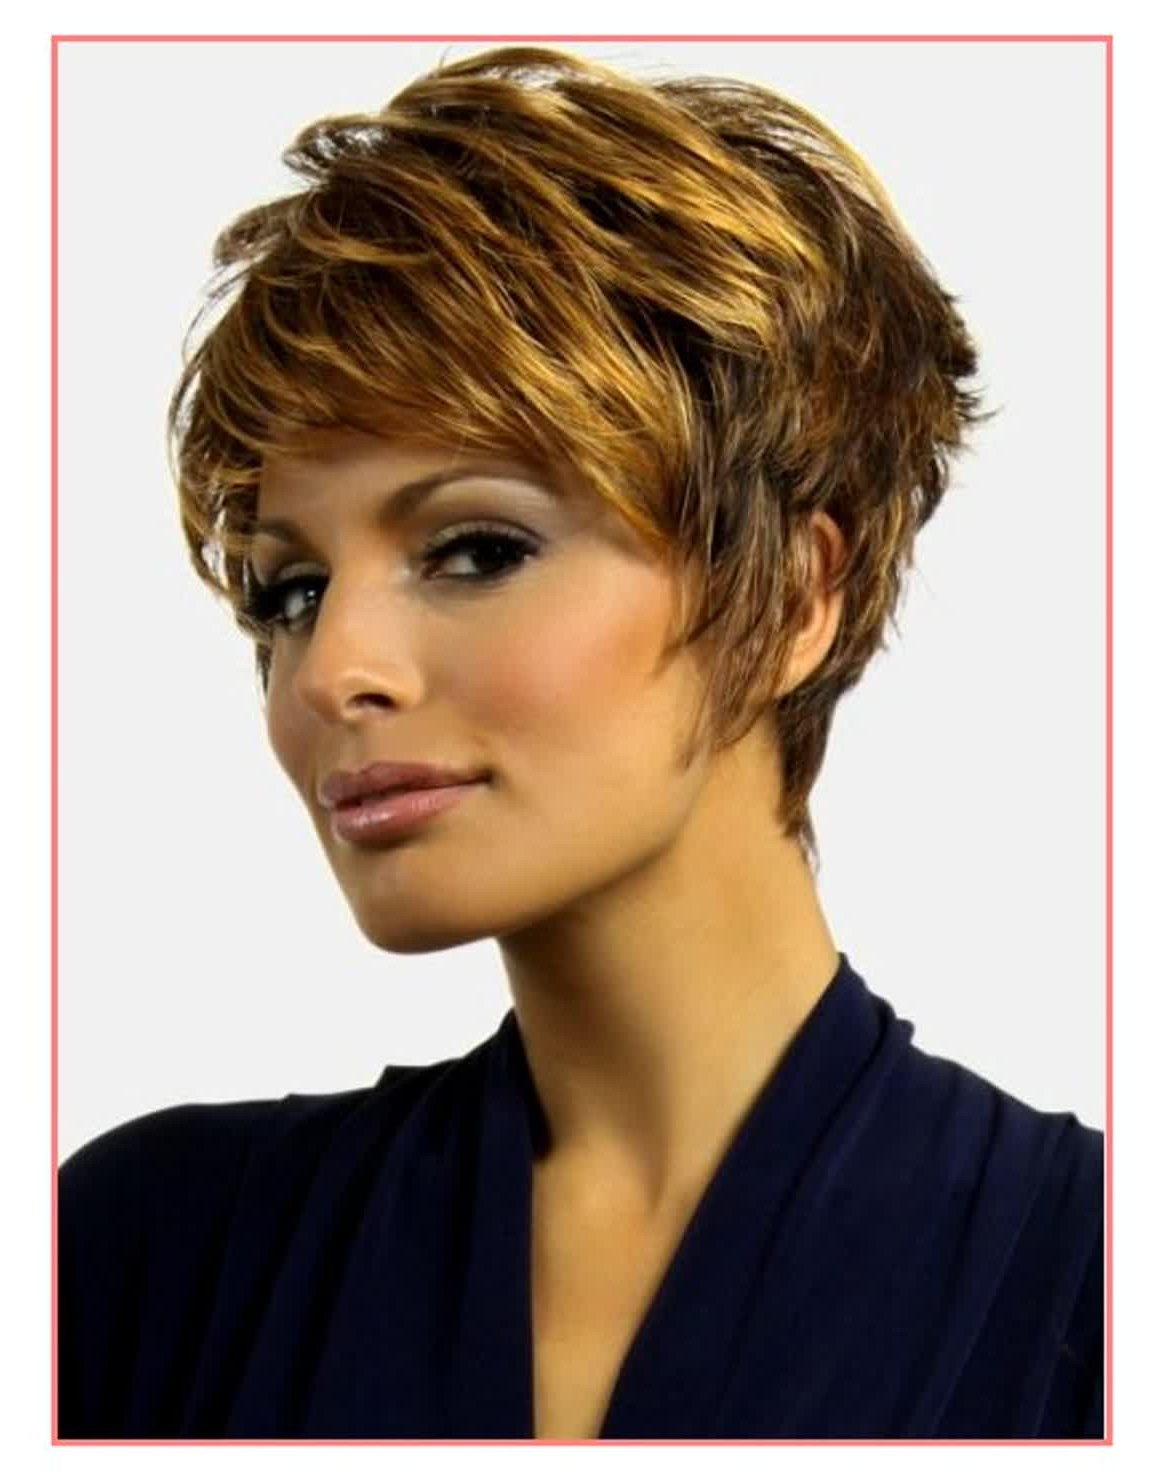 Find Out Full Gallery Of Good Short Haircuts For Thick Frizzy Hair With Regard To Short Haircuts For Thick Frizzy Hair (View 7 of 25)